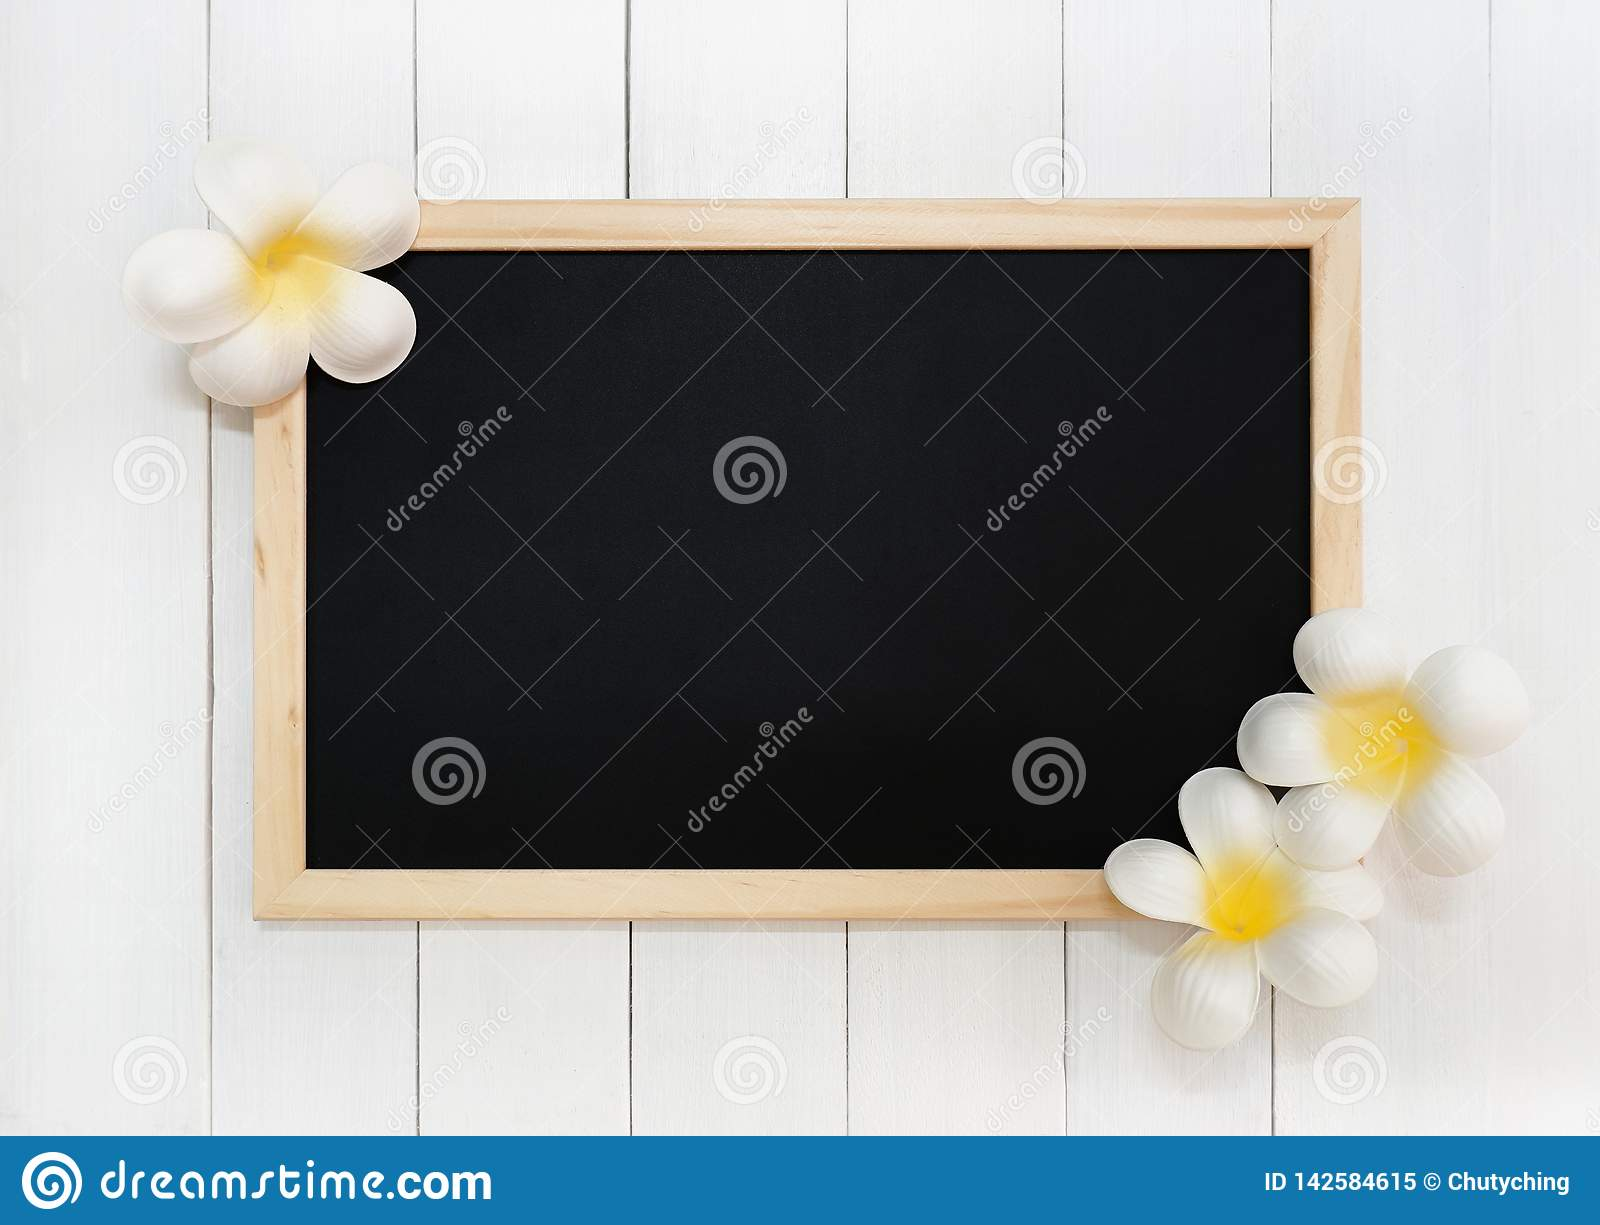 Wooden Chalkboard with Artificial White Plumeria Flowers